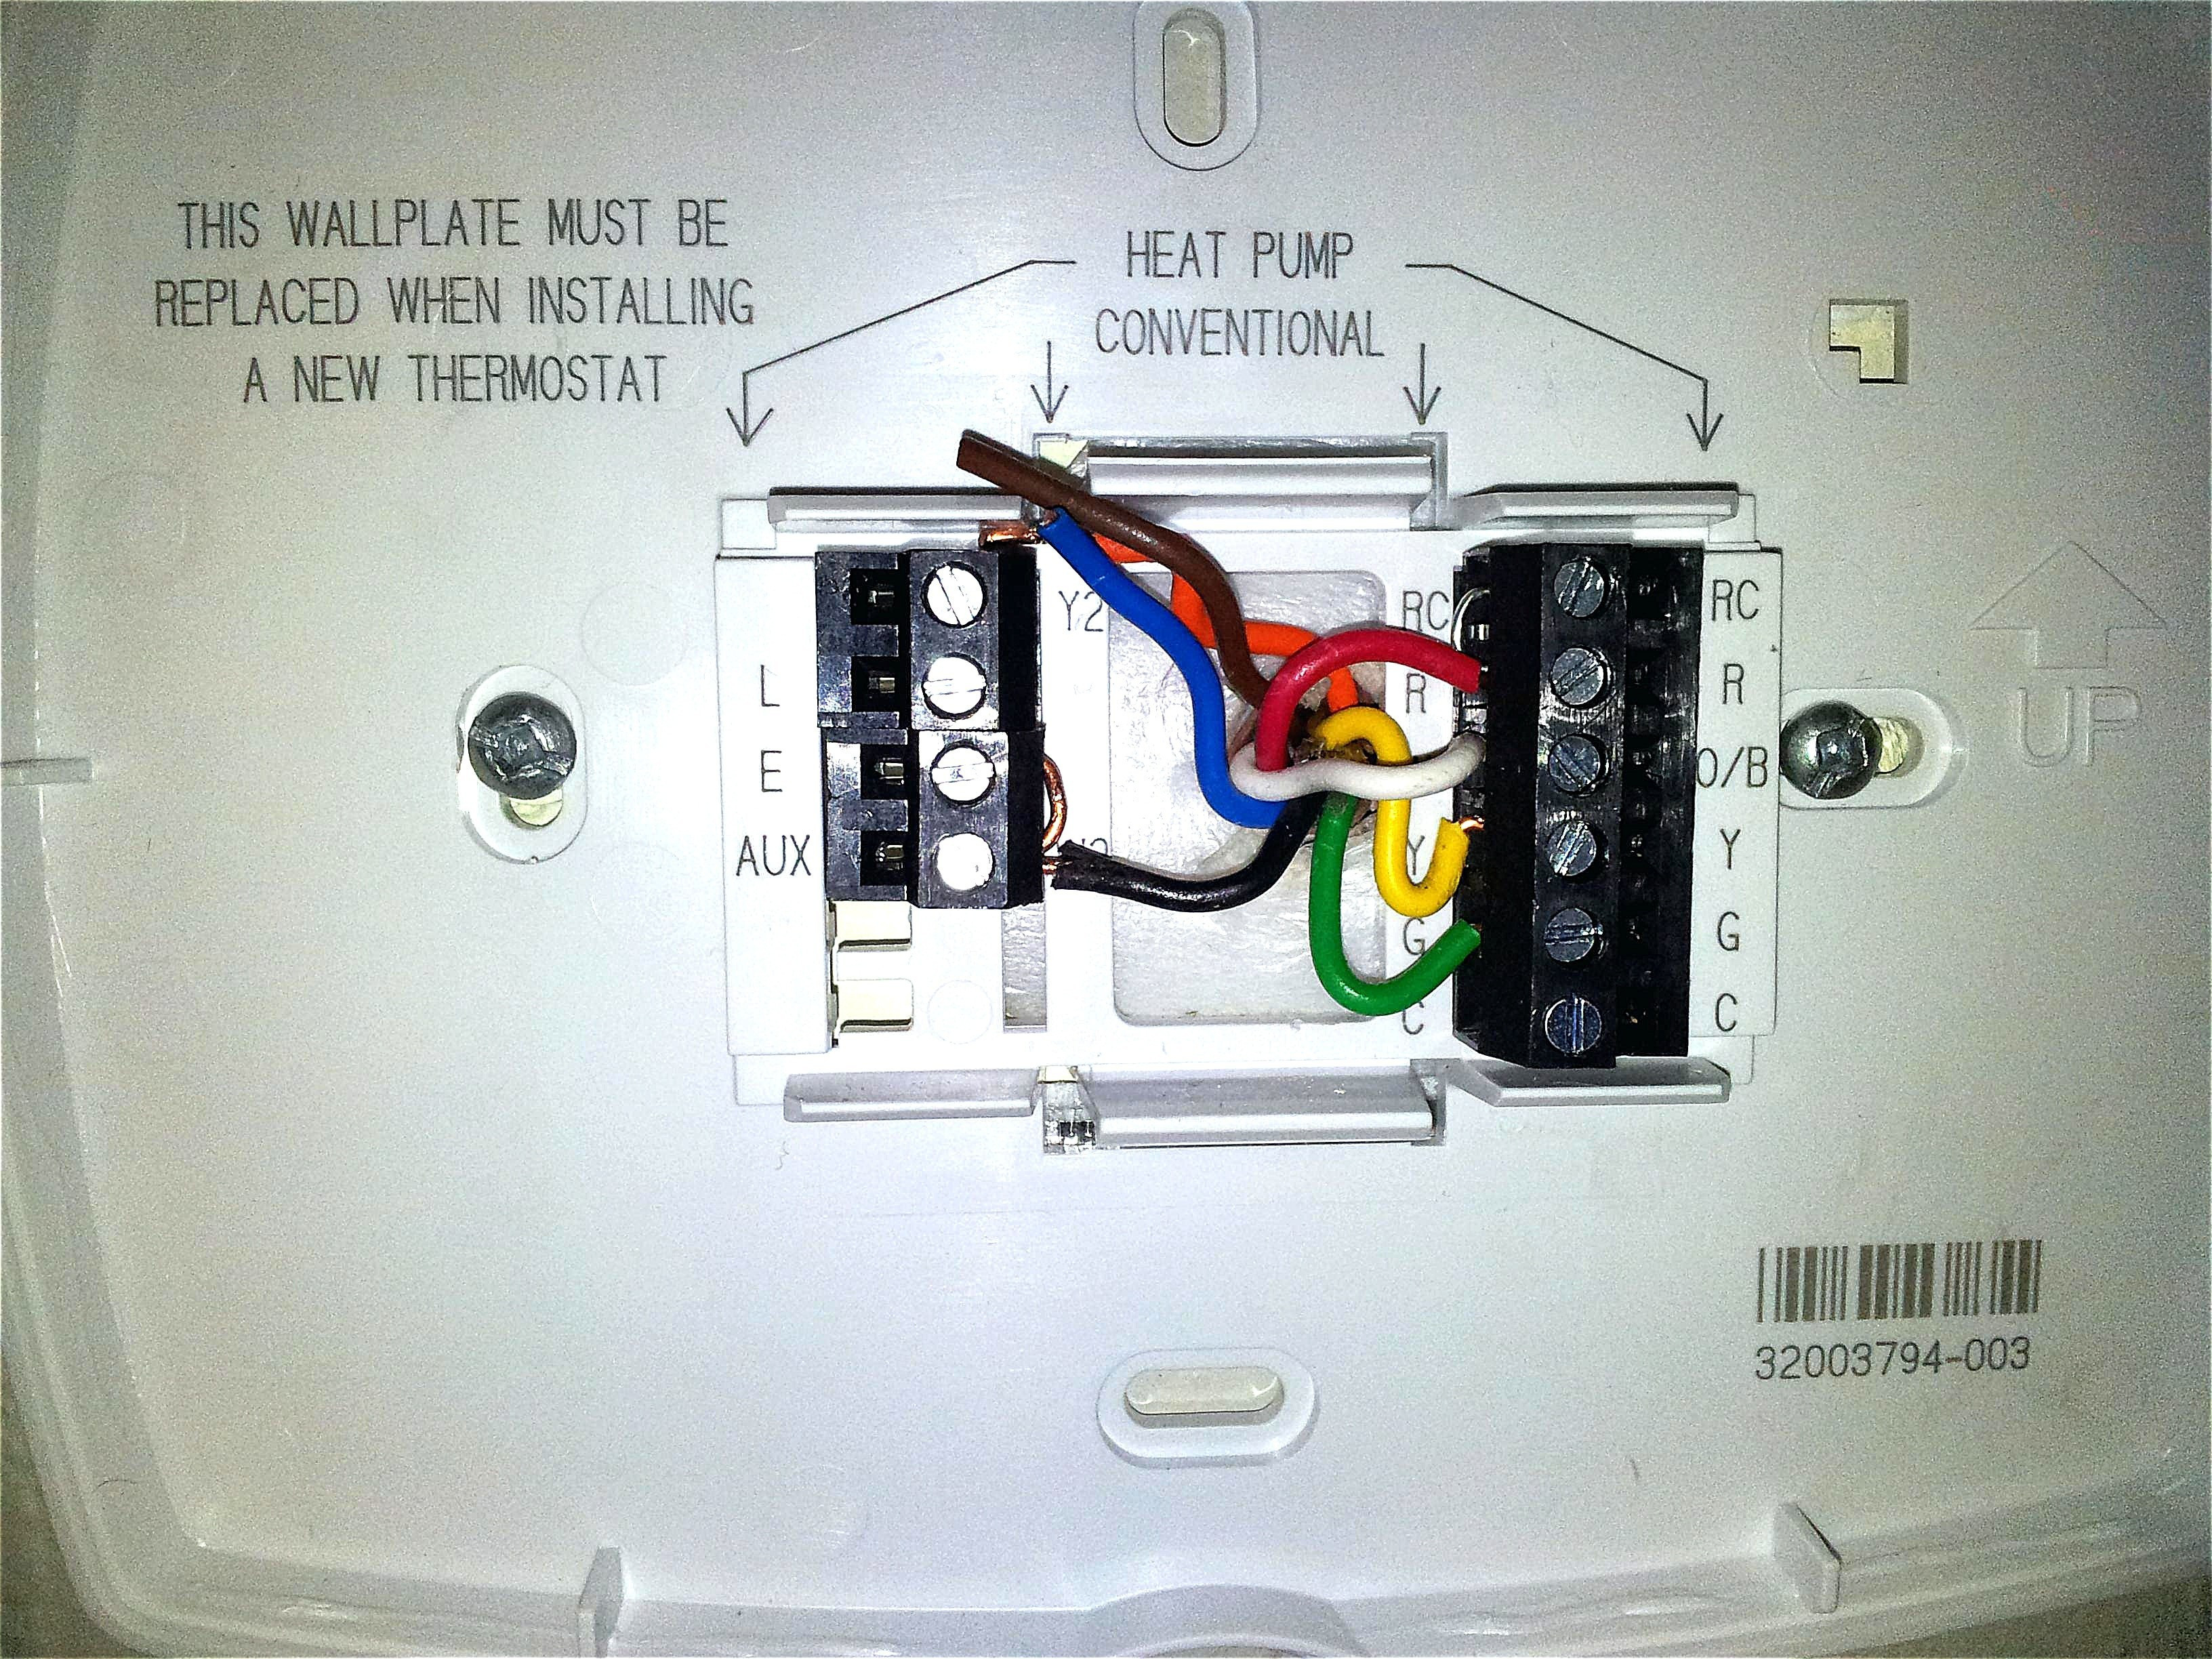 Dometic Thermostat Wiring Diagram Best Of Dometic Thermostat - Dometic Thermostat Wiring Diagram